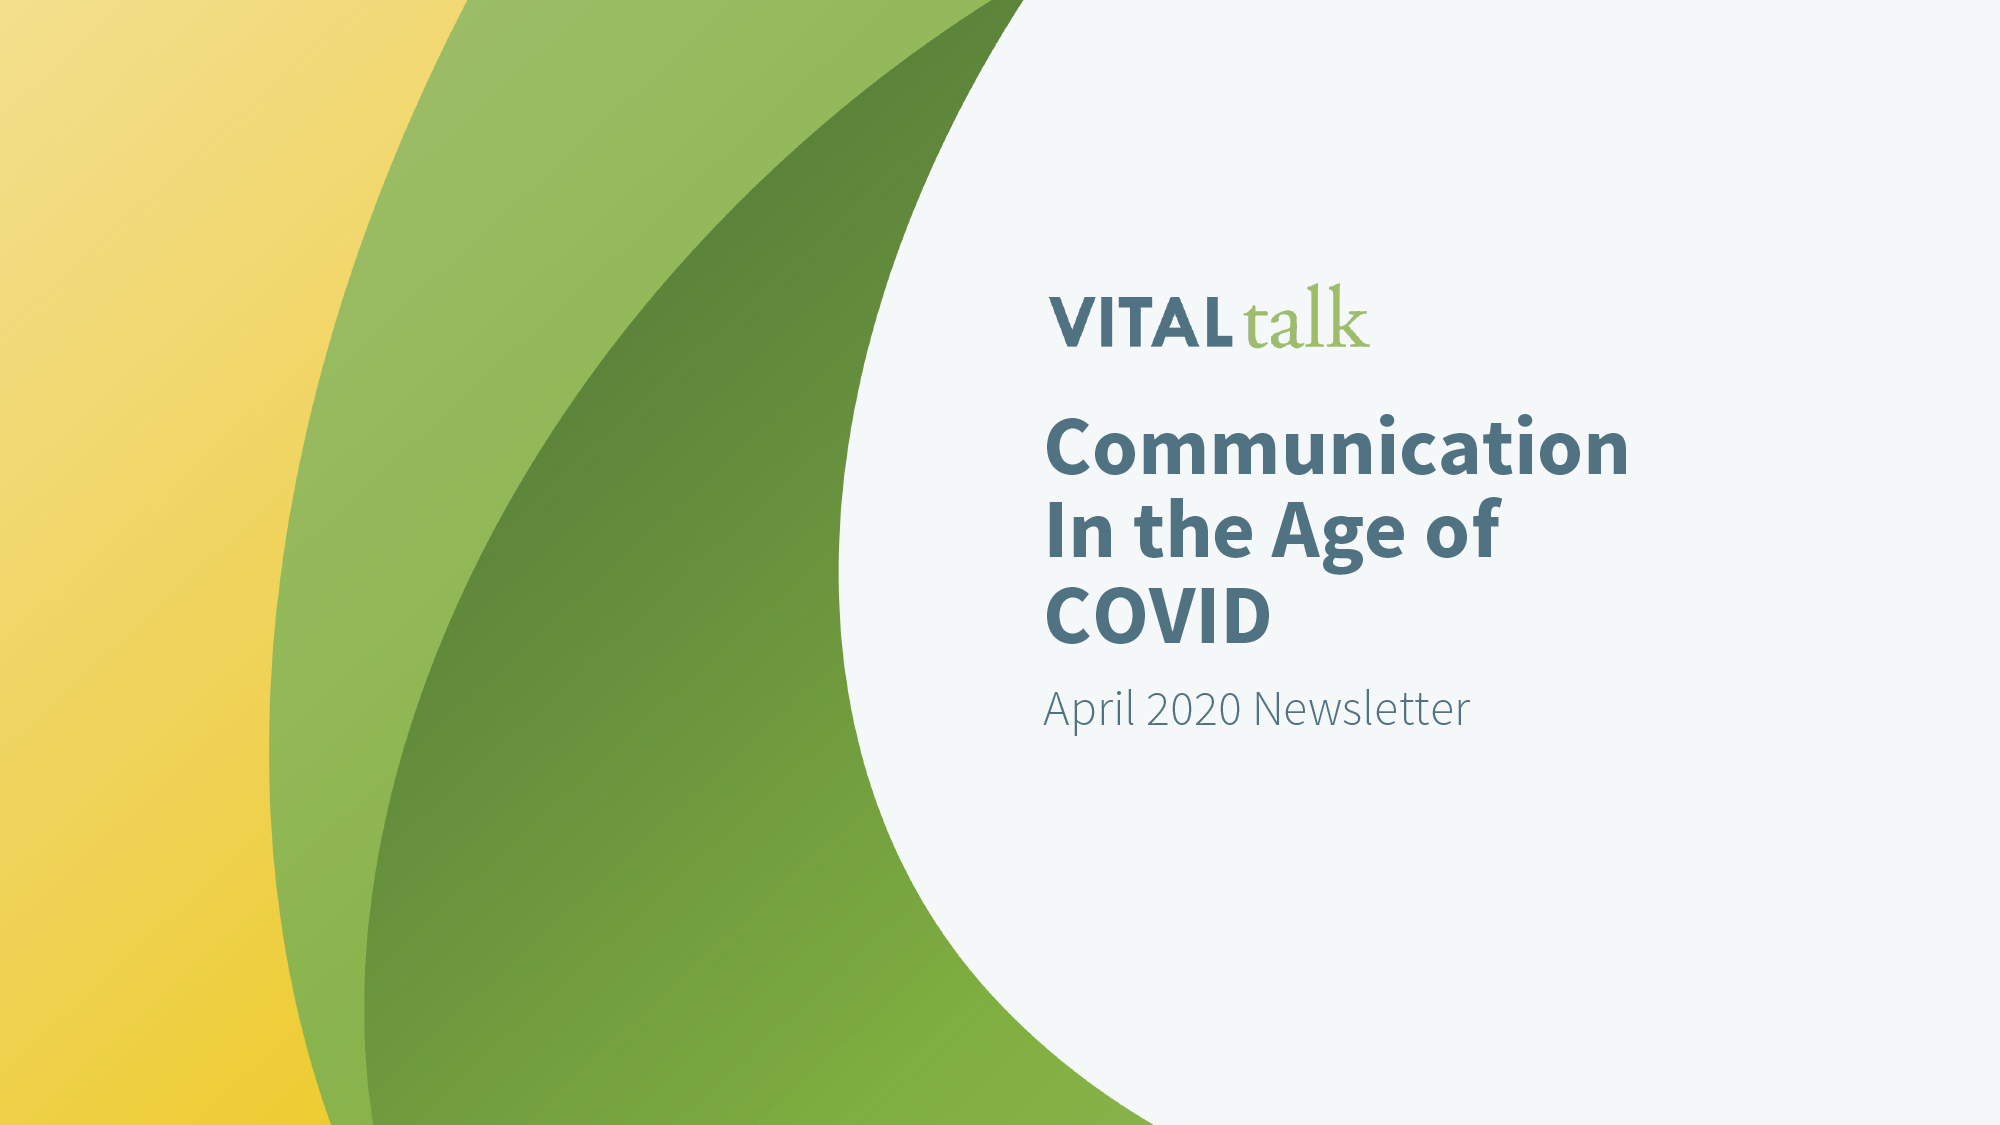 Communication In the Age of COVID